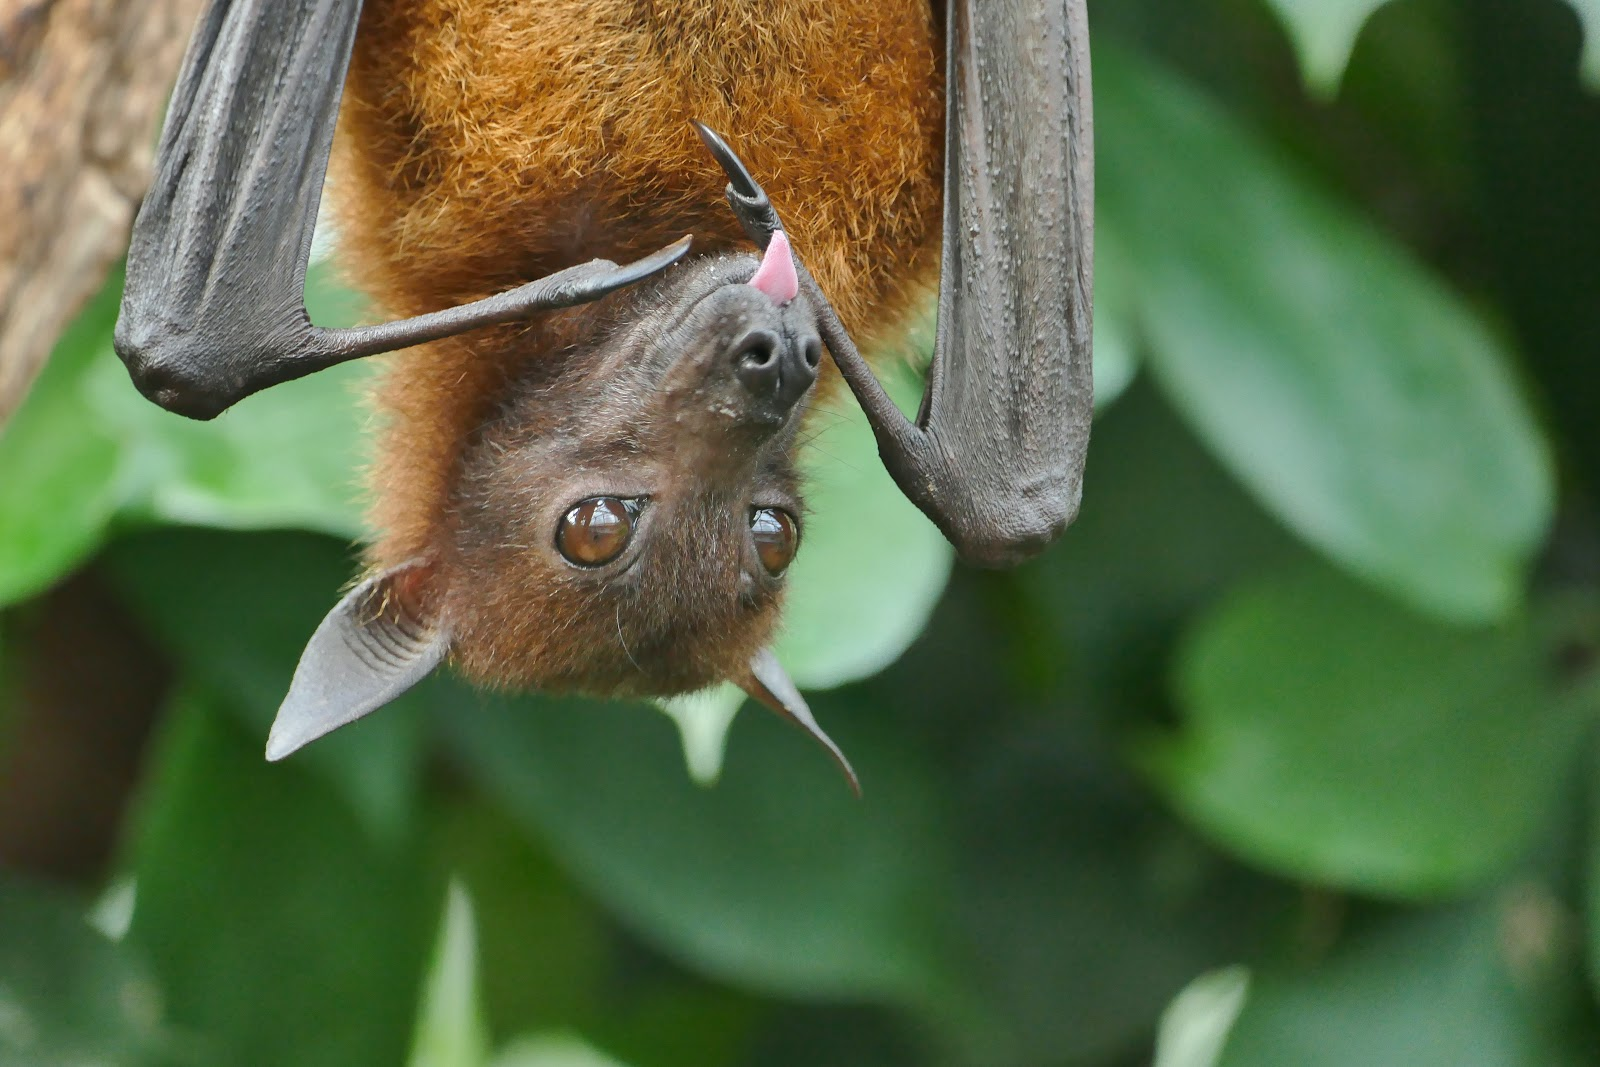 Factory farming: Bats were blaming for provoking the Coronavirus